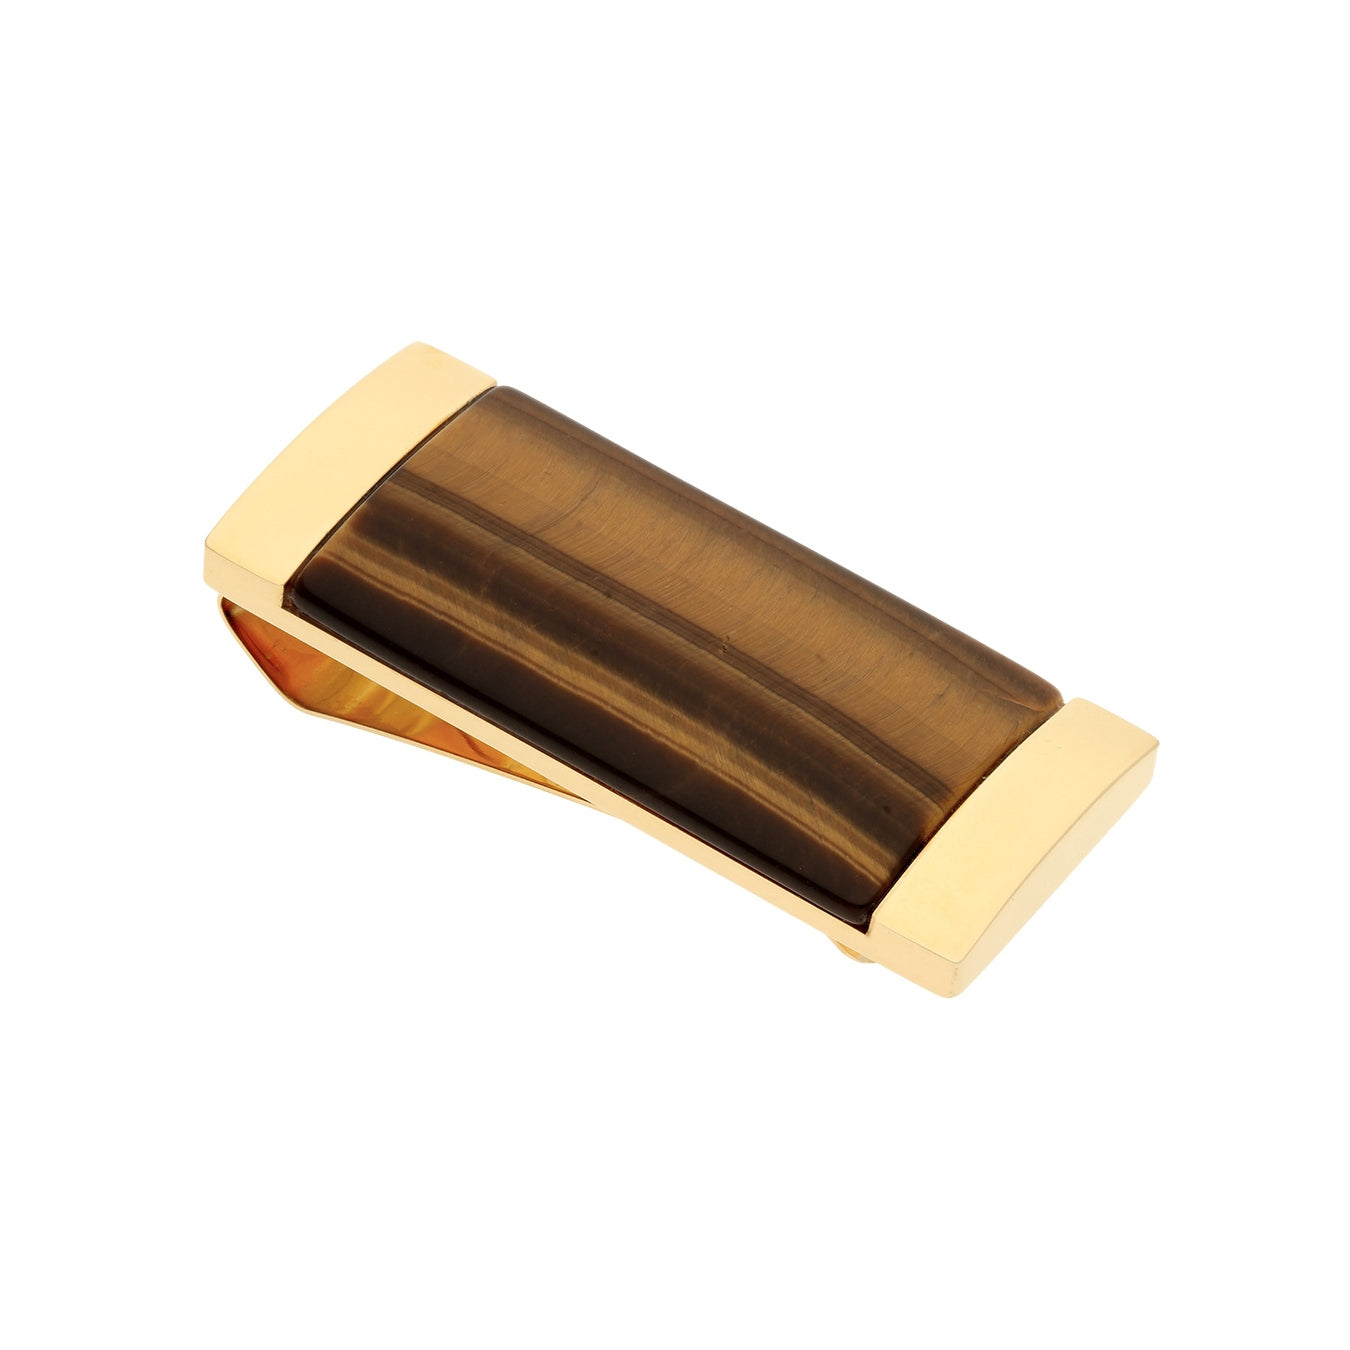 Tiger's Eye Money Clip, Gold Tone Plated Stainless Steel